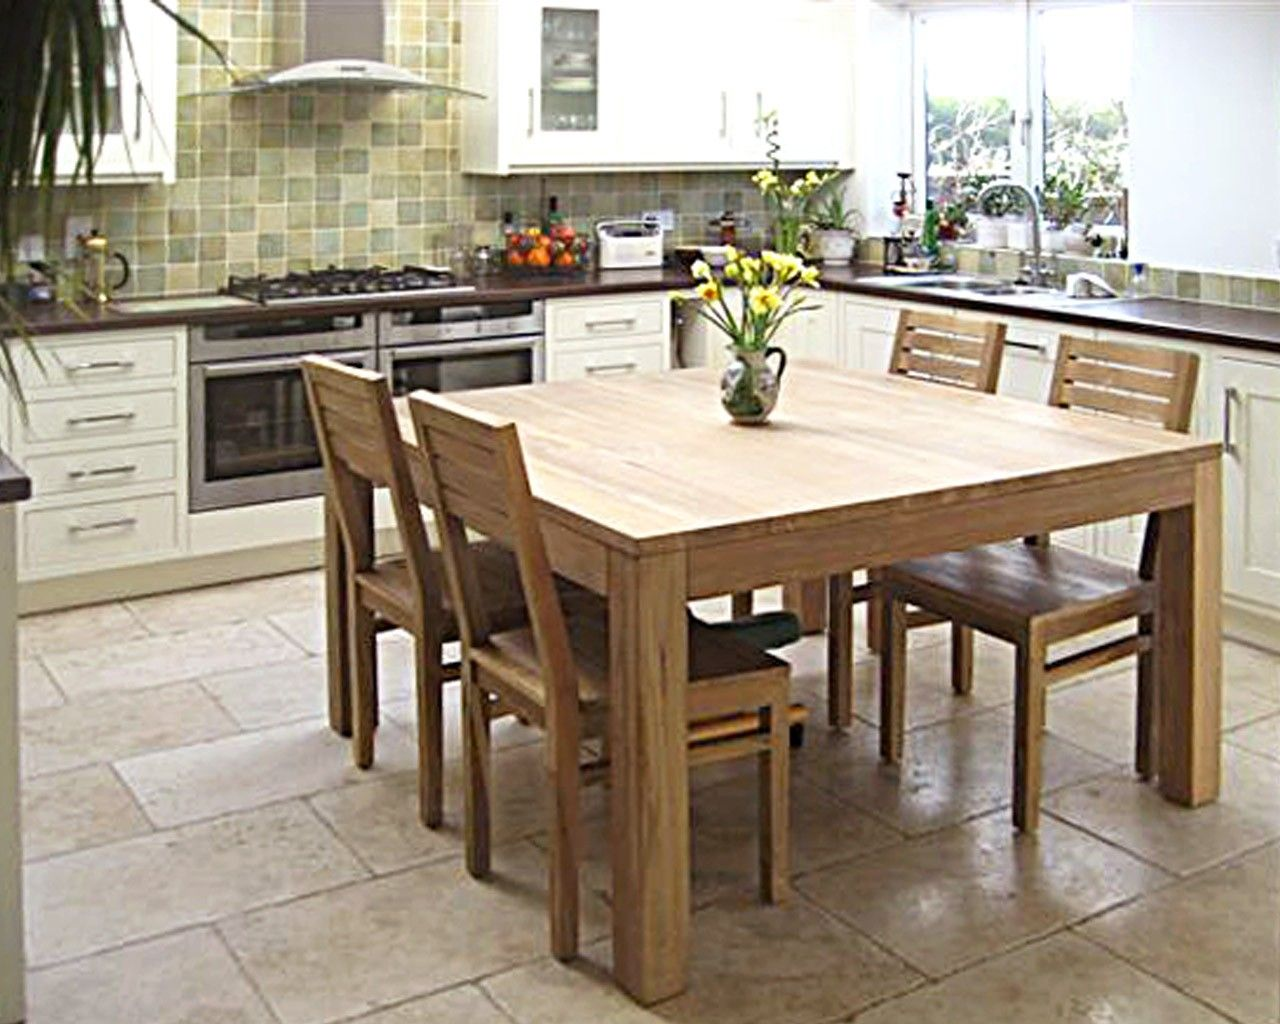 Classic Dining Furniture Small Kitchen Design Square Tables In 14 Top Rated Room